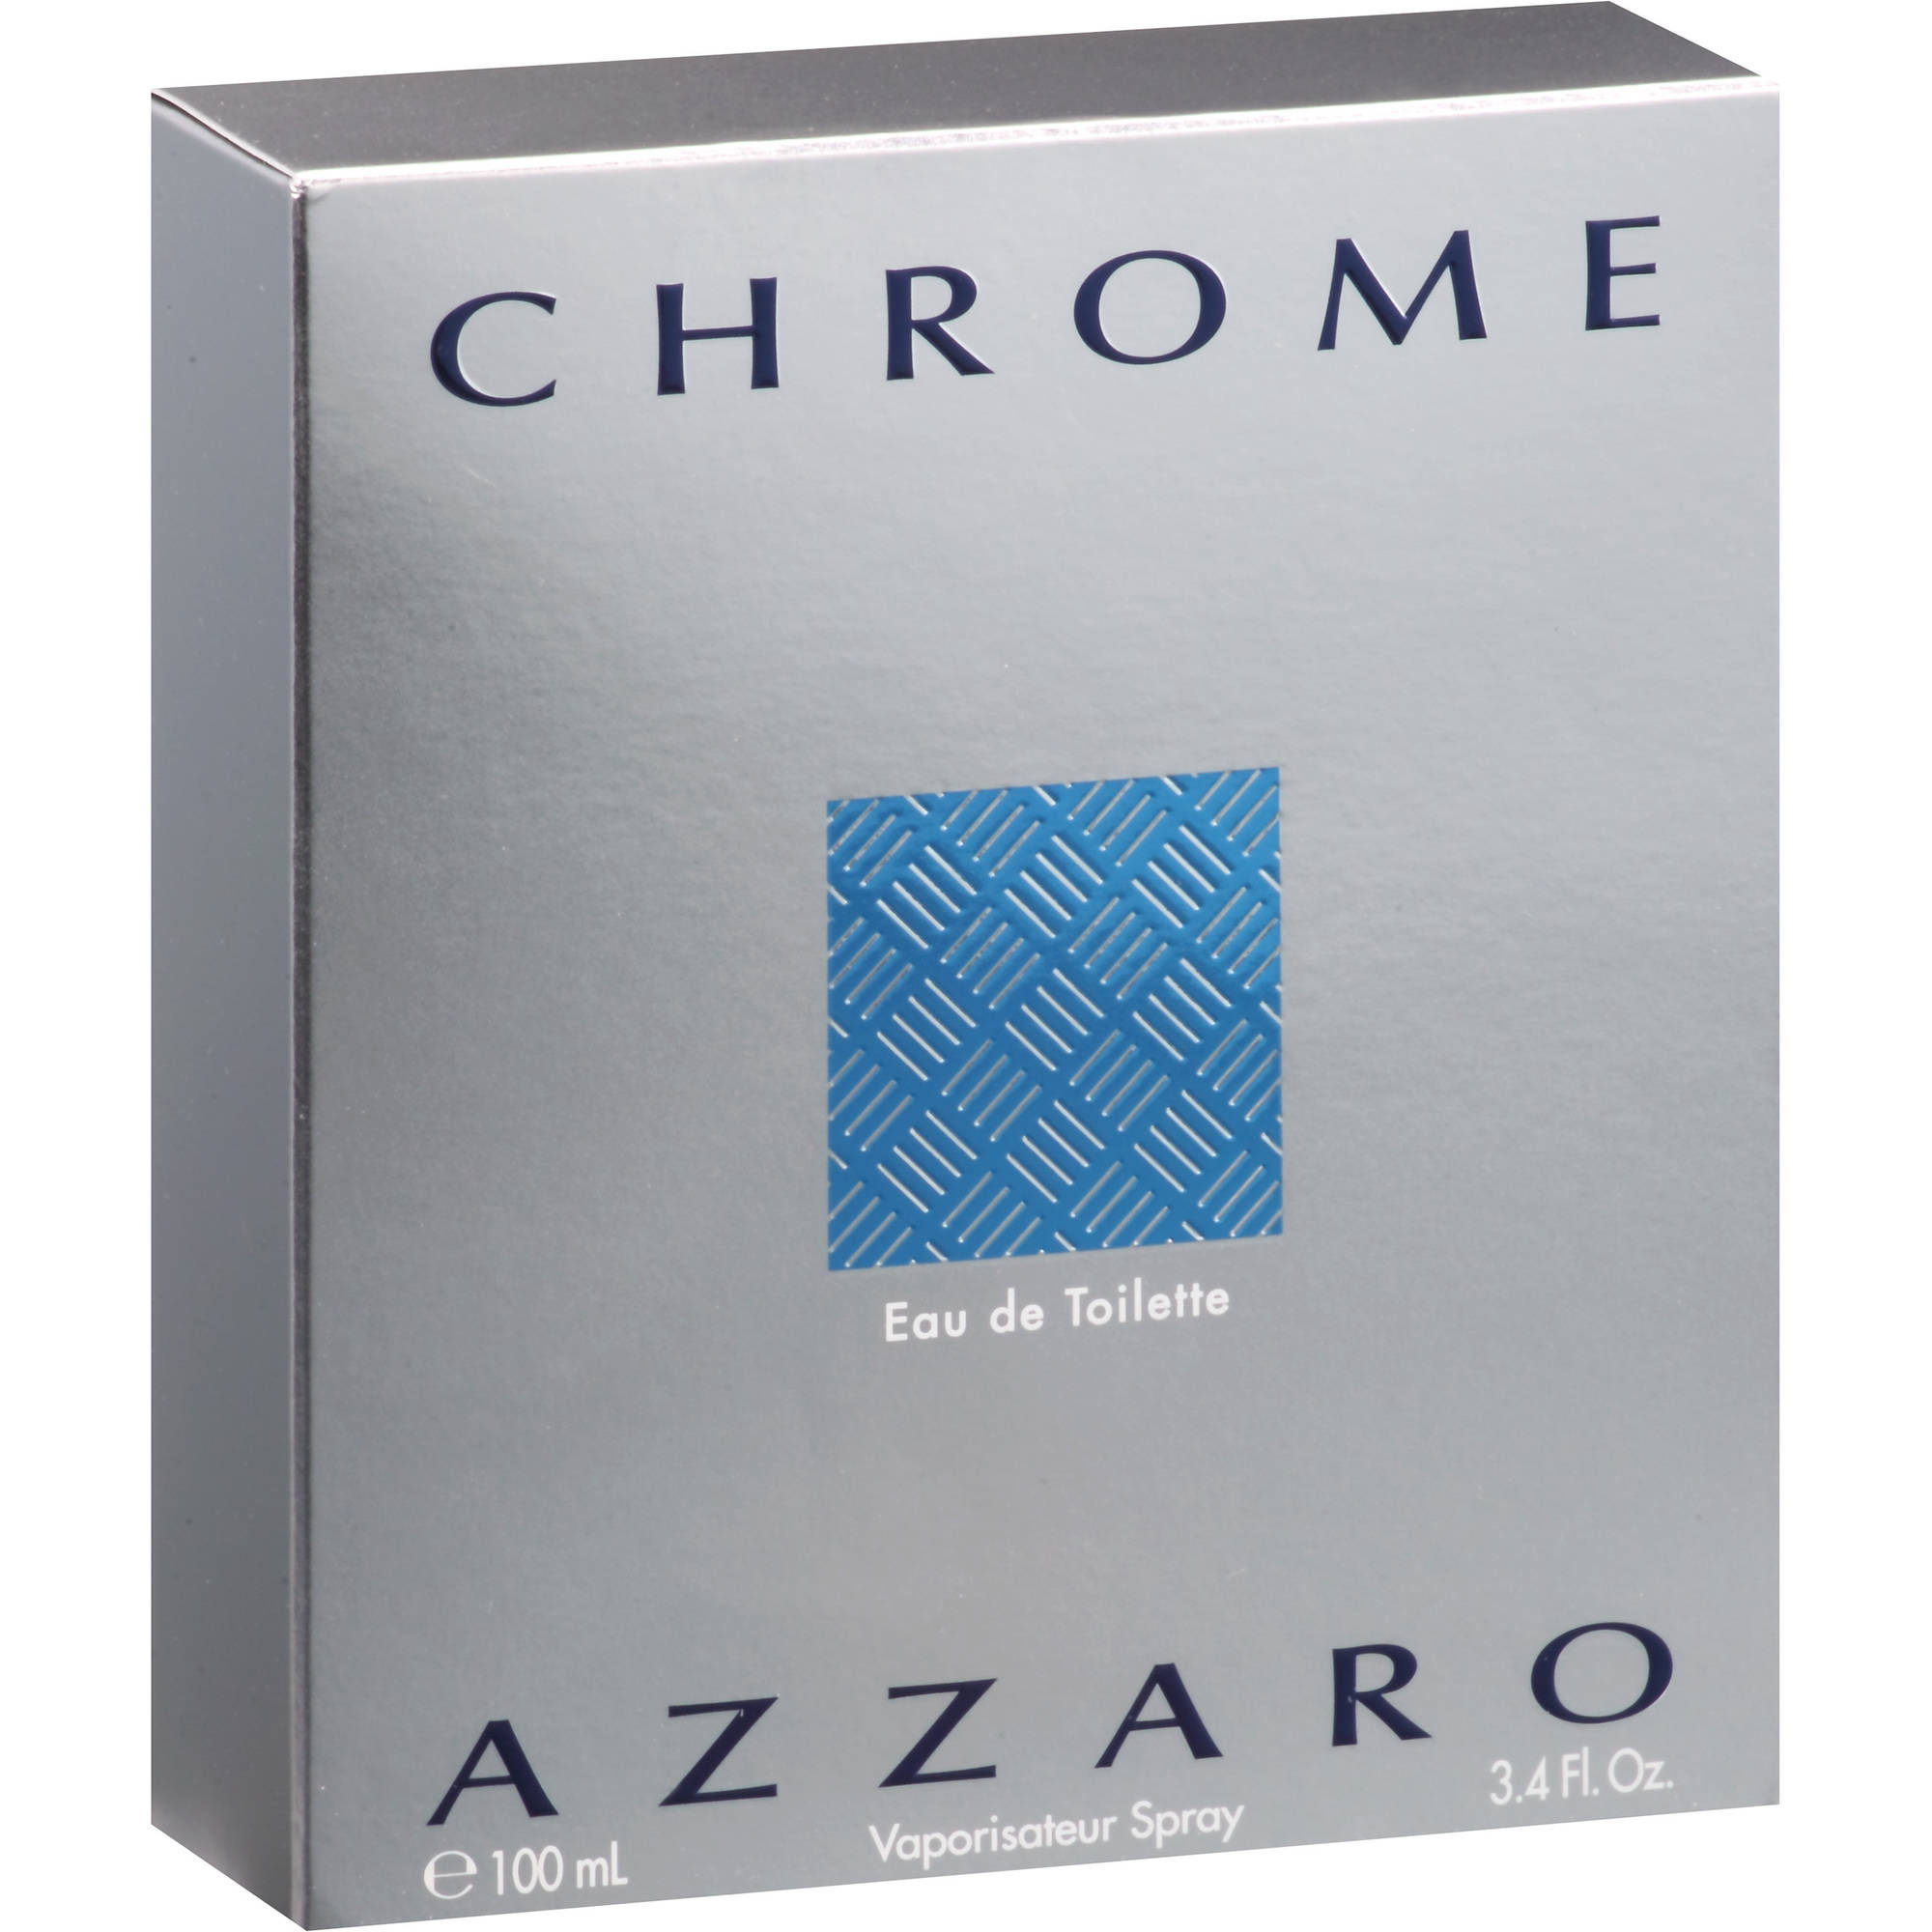 Azzaro Chrome Eau de Toilette 3.4 oz Spray Men